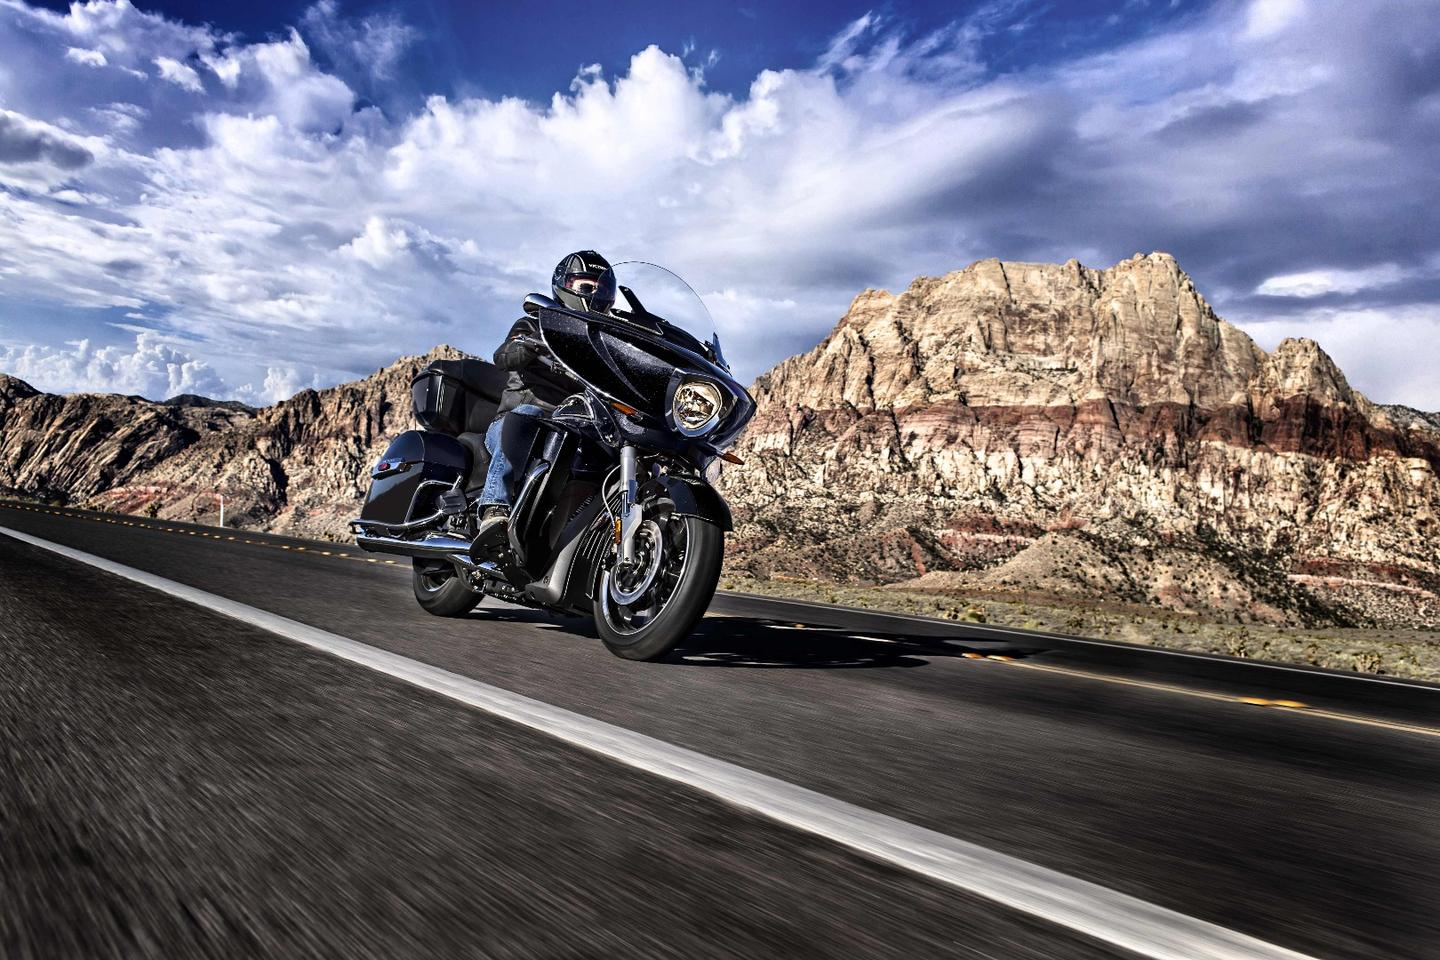 High-end motorcycleslike the Victory Cross Country Tour didn't attract enough customers to make the company profitable